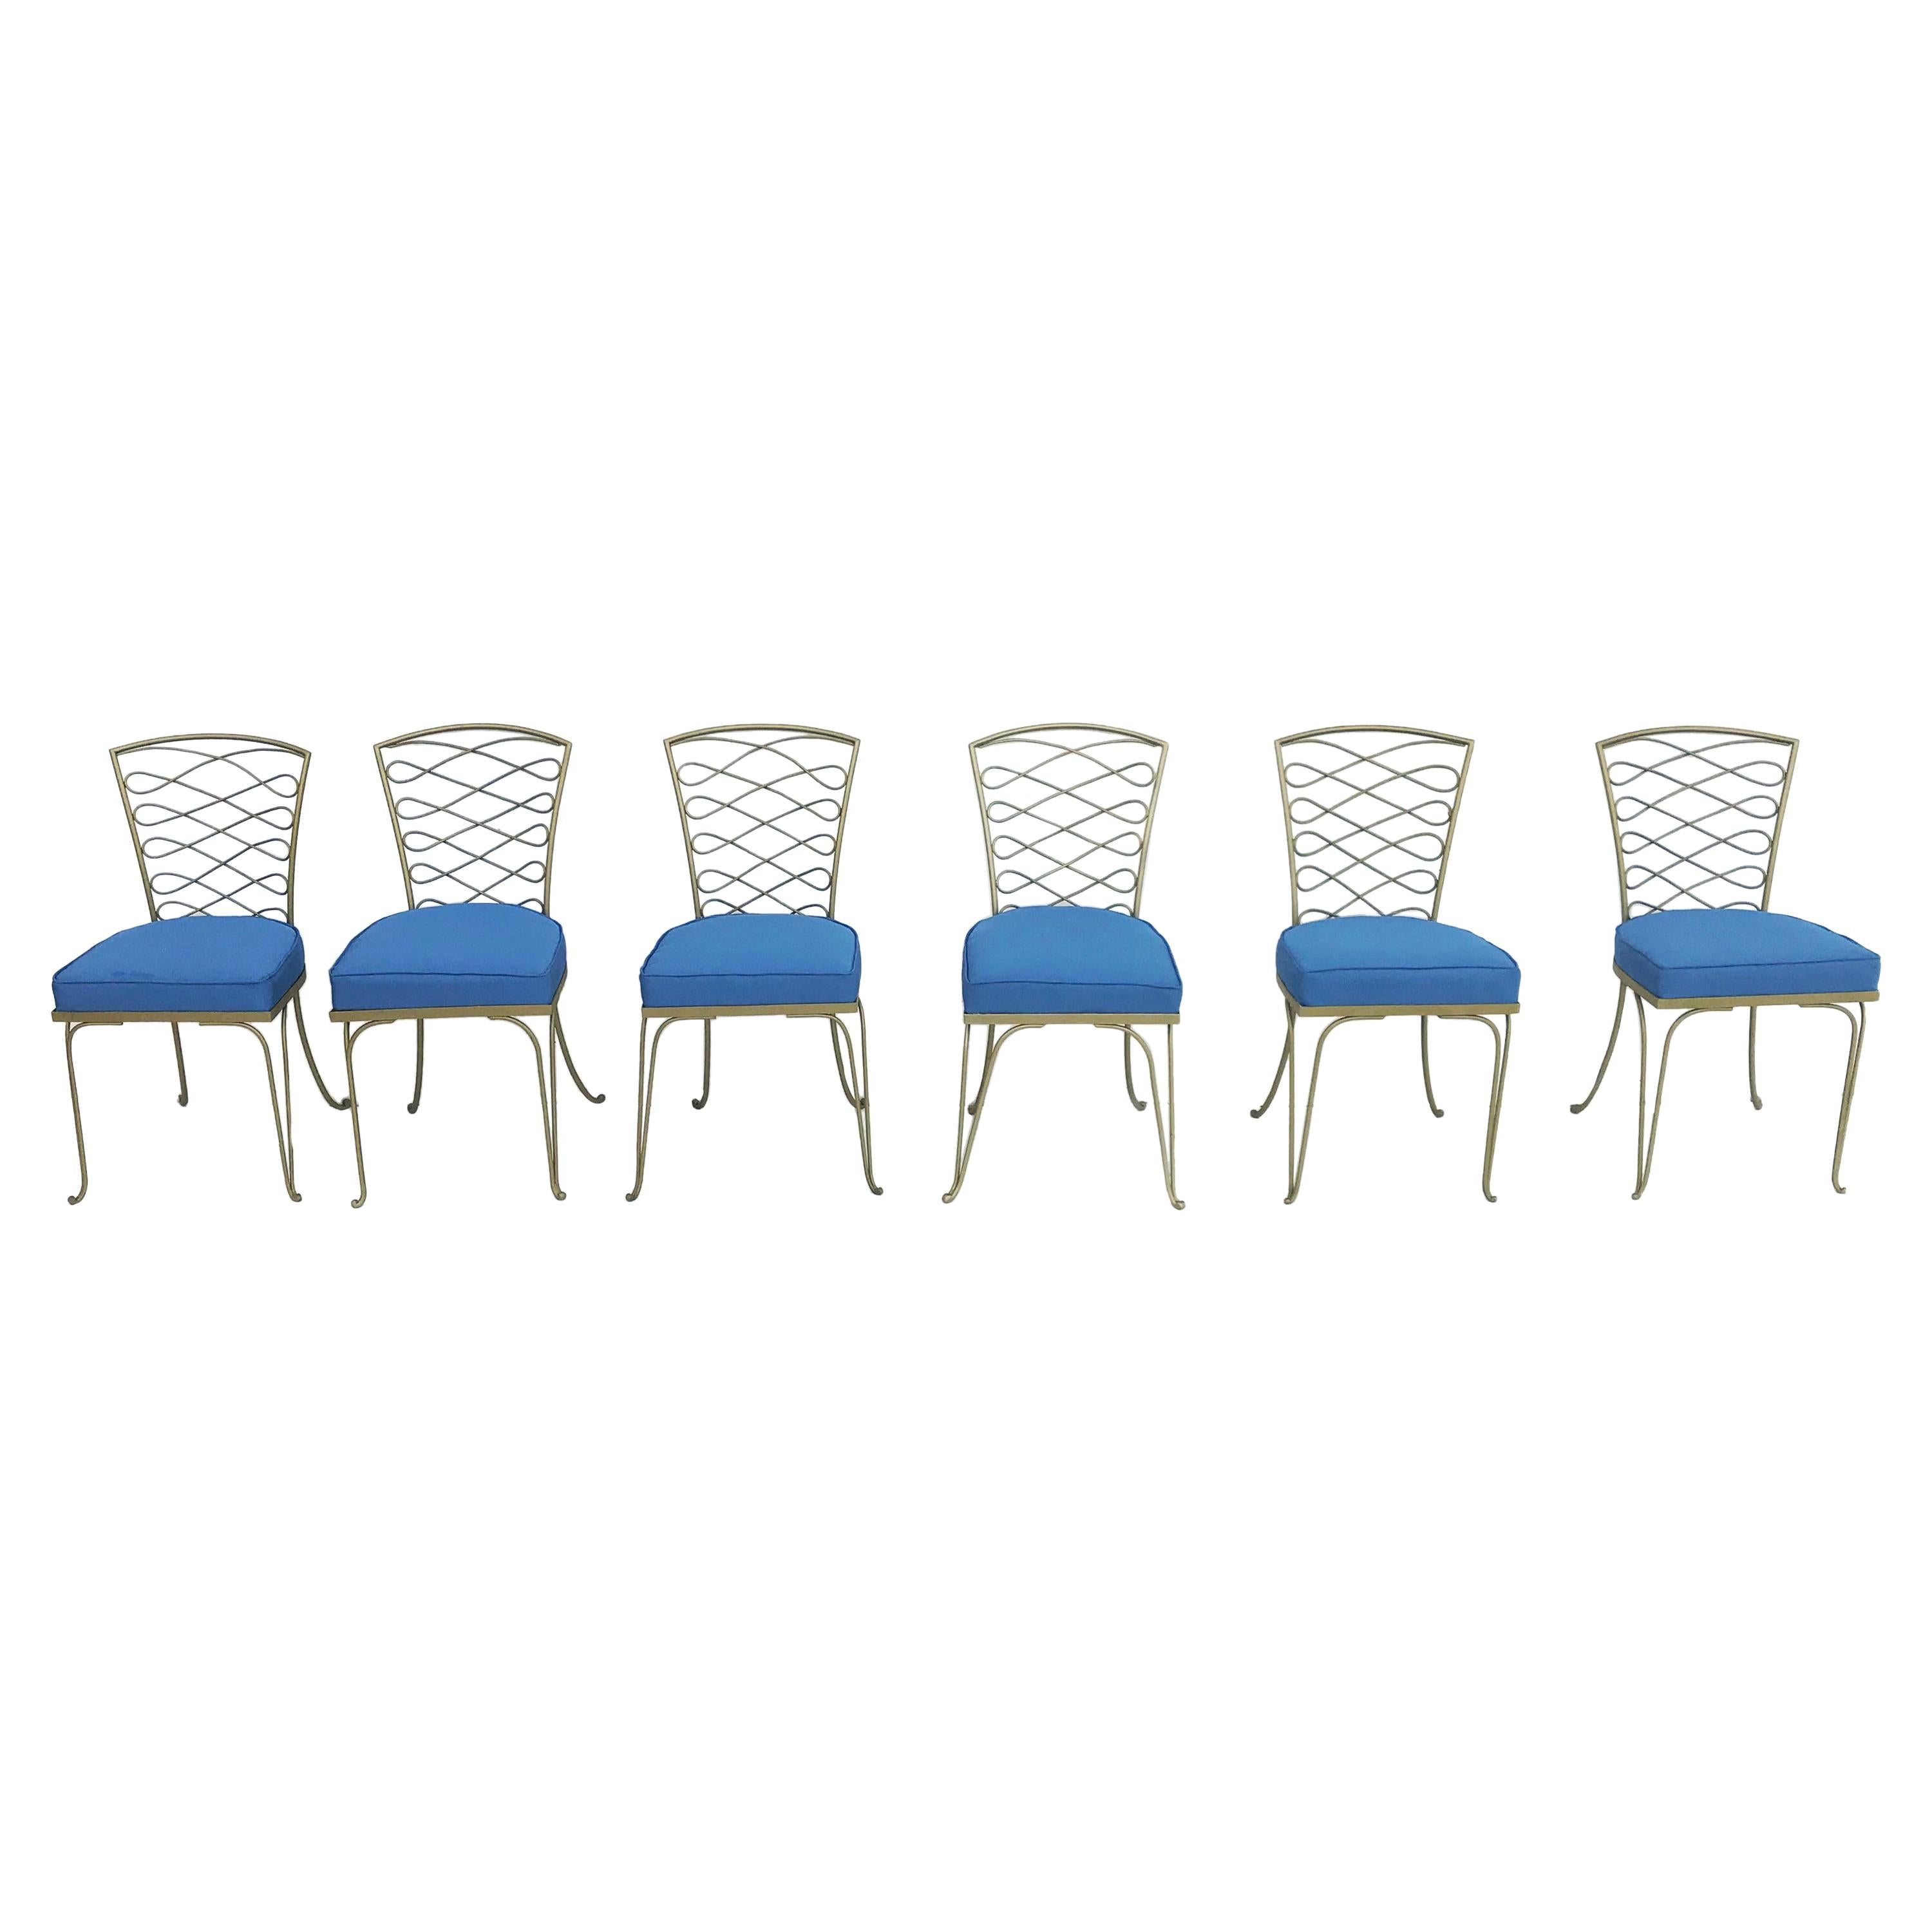 Set of Six Rene Prou Art Deco Wrought Iron Dining Room Chairs Blue Fabric Seats